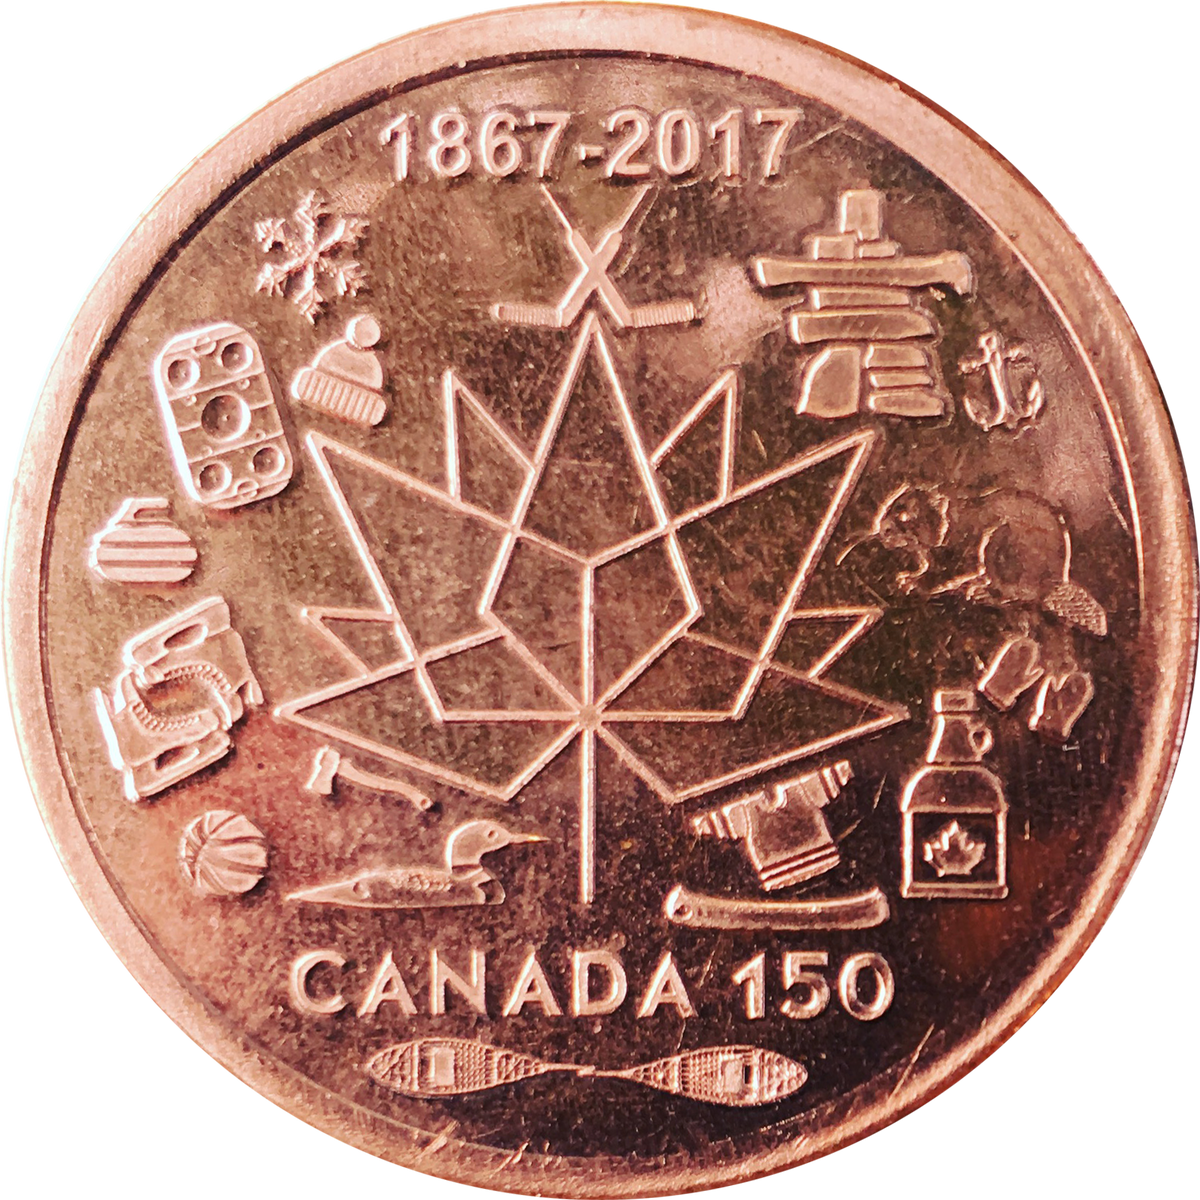 Canada 150 Commemorative Hand Made Coin